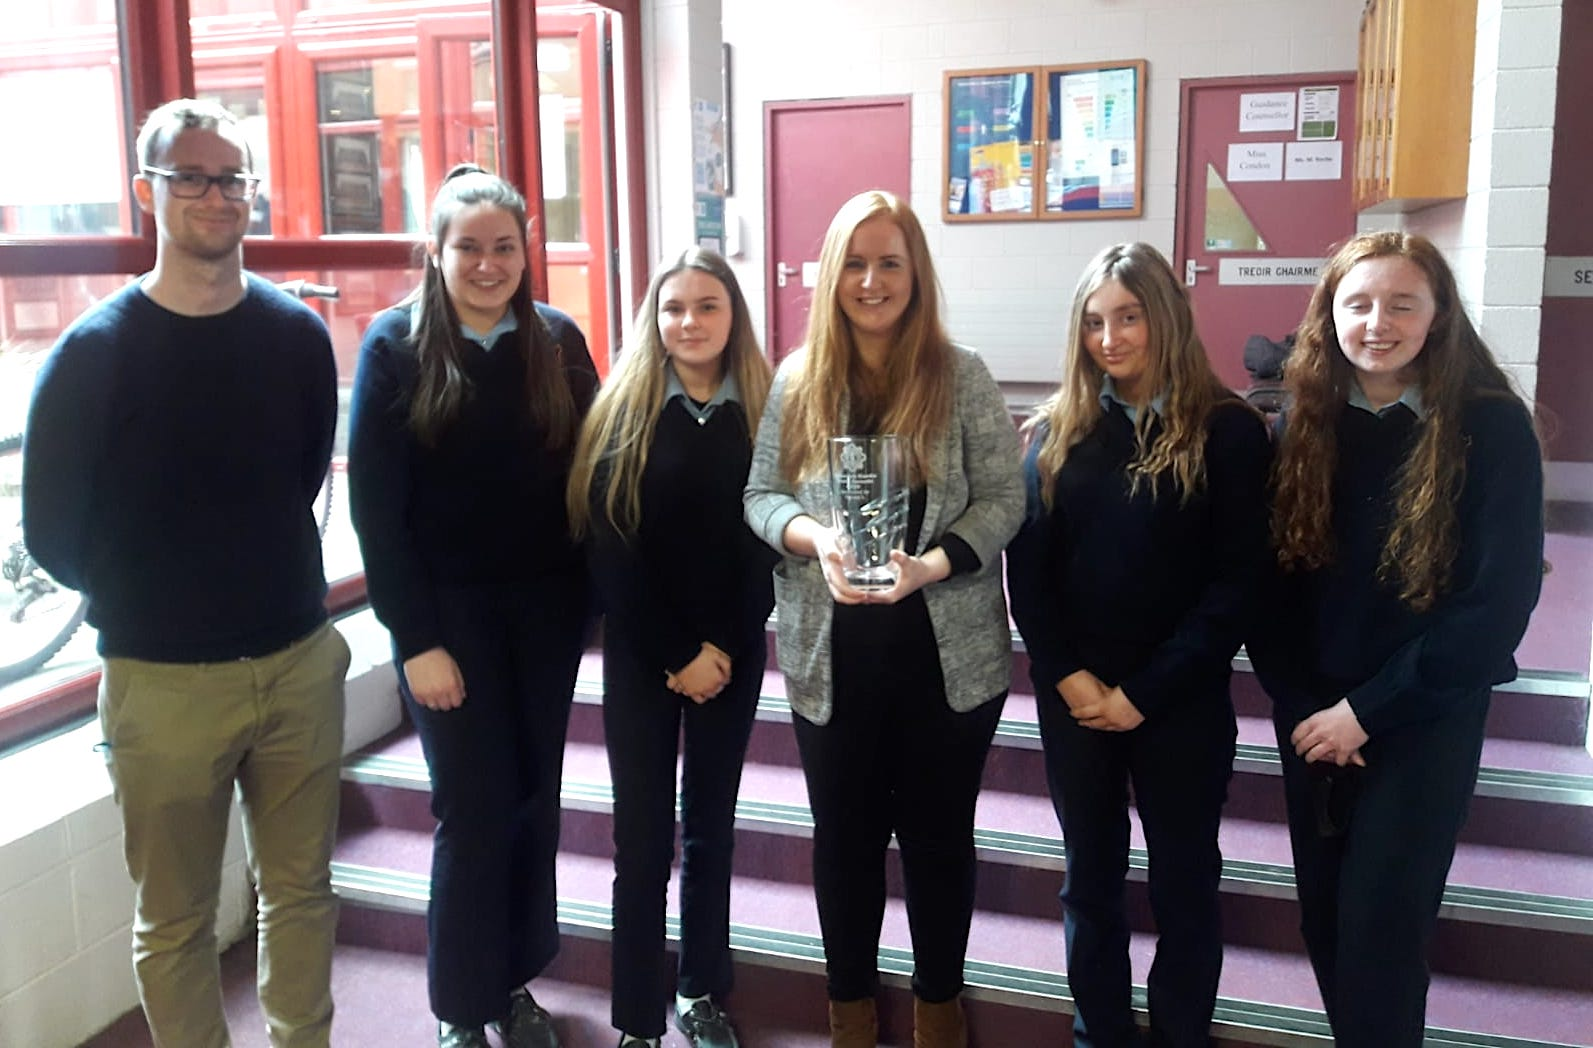 TY Students from Scoil Pol (pictured above) with the help of local businesses and money they collected through donations, prepared care packages which they donated to Novas, a homeless organisation.